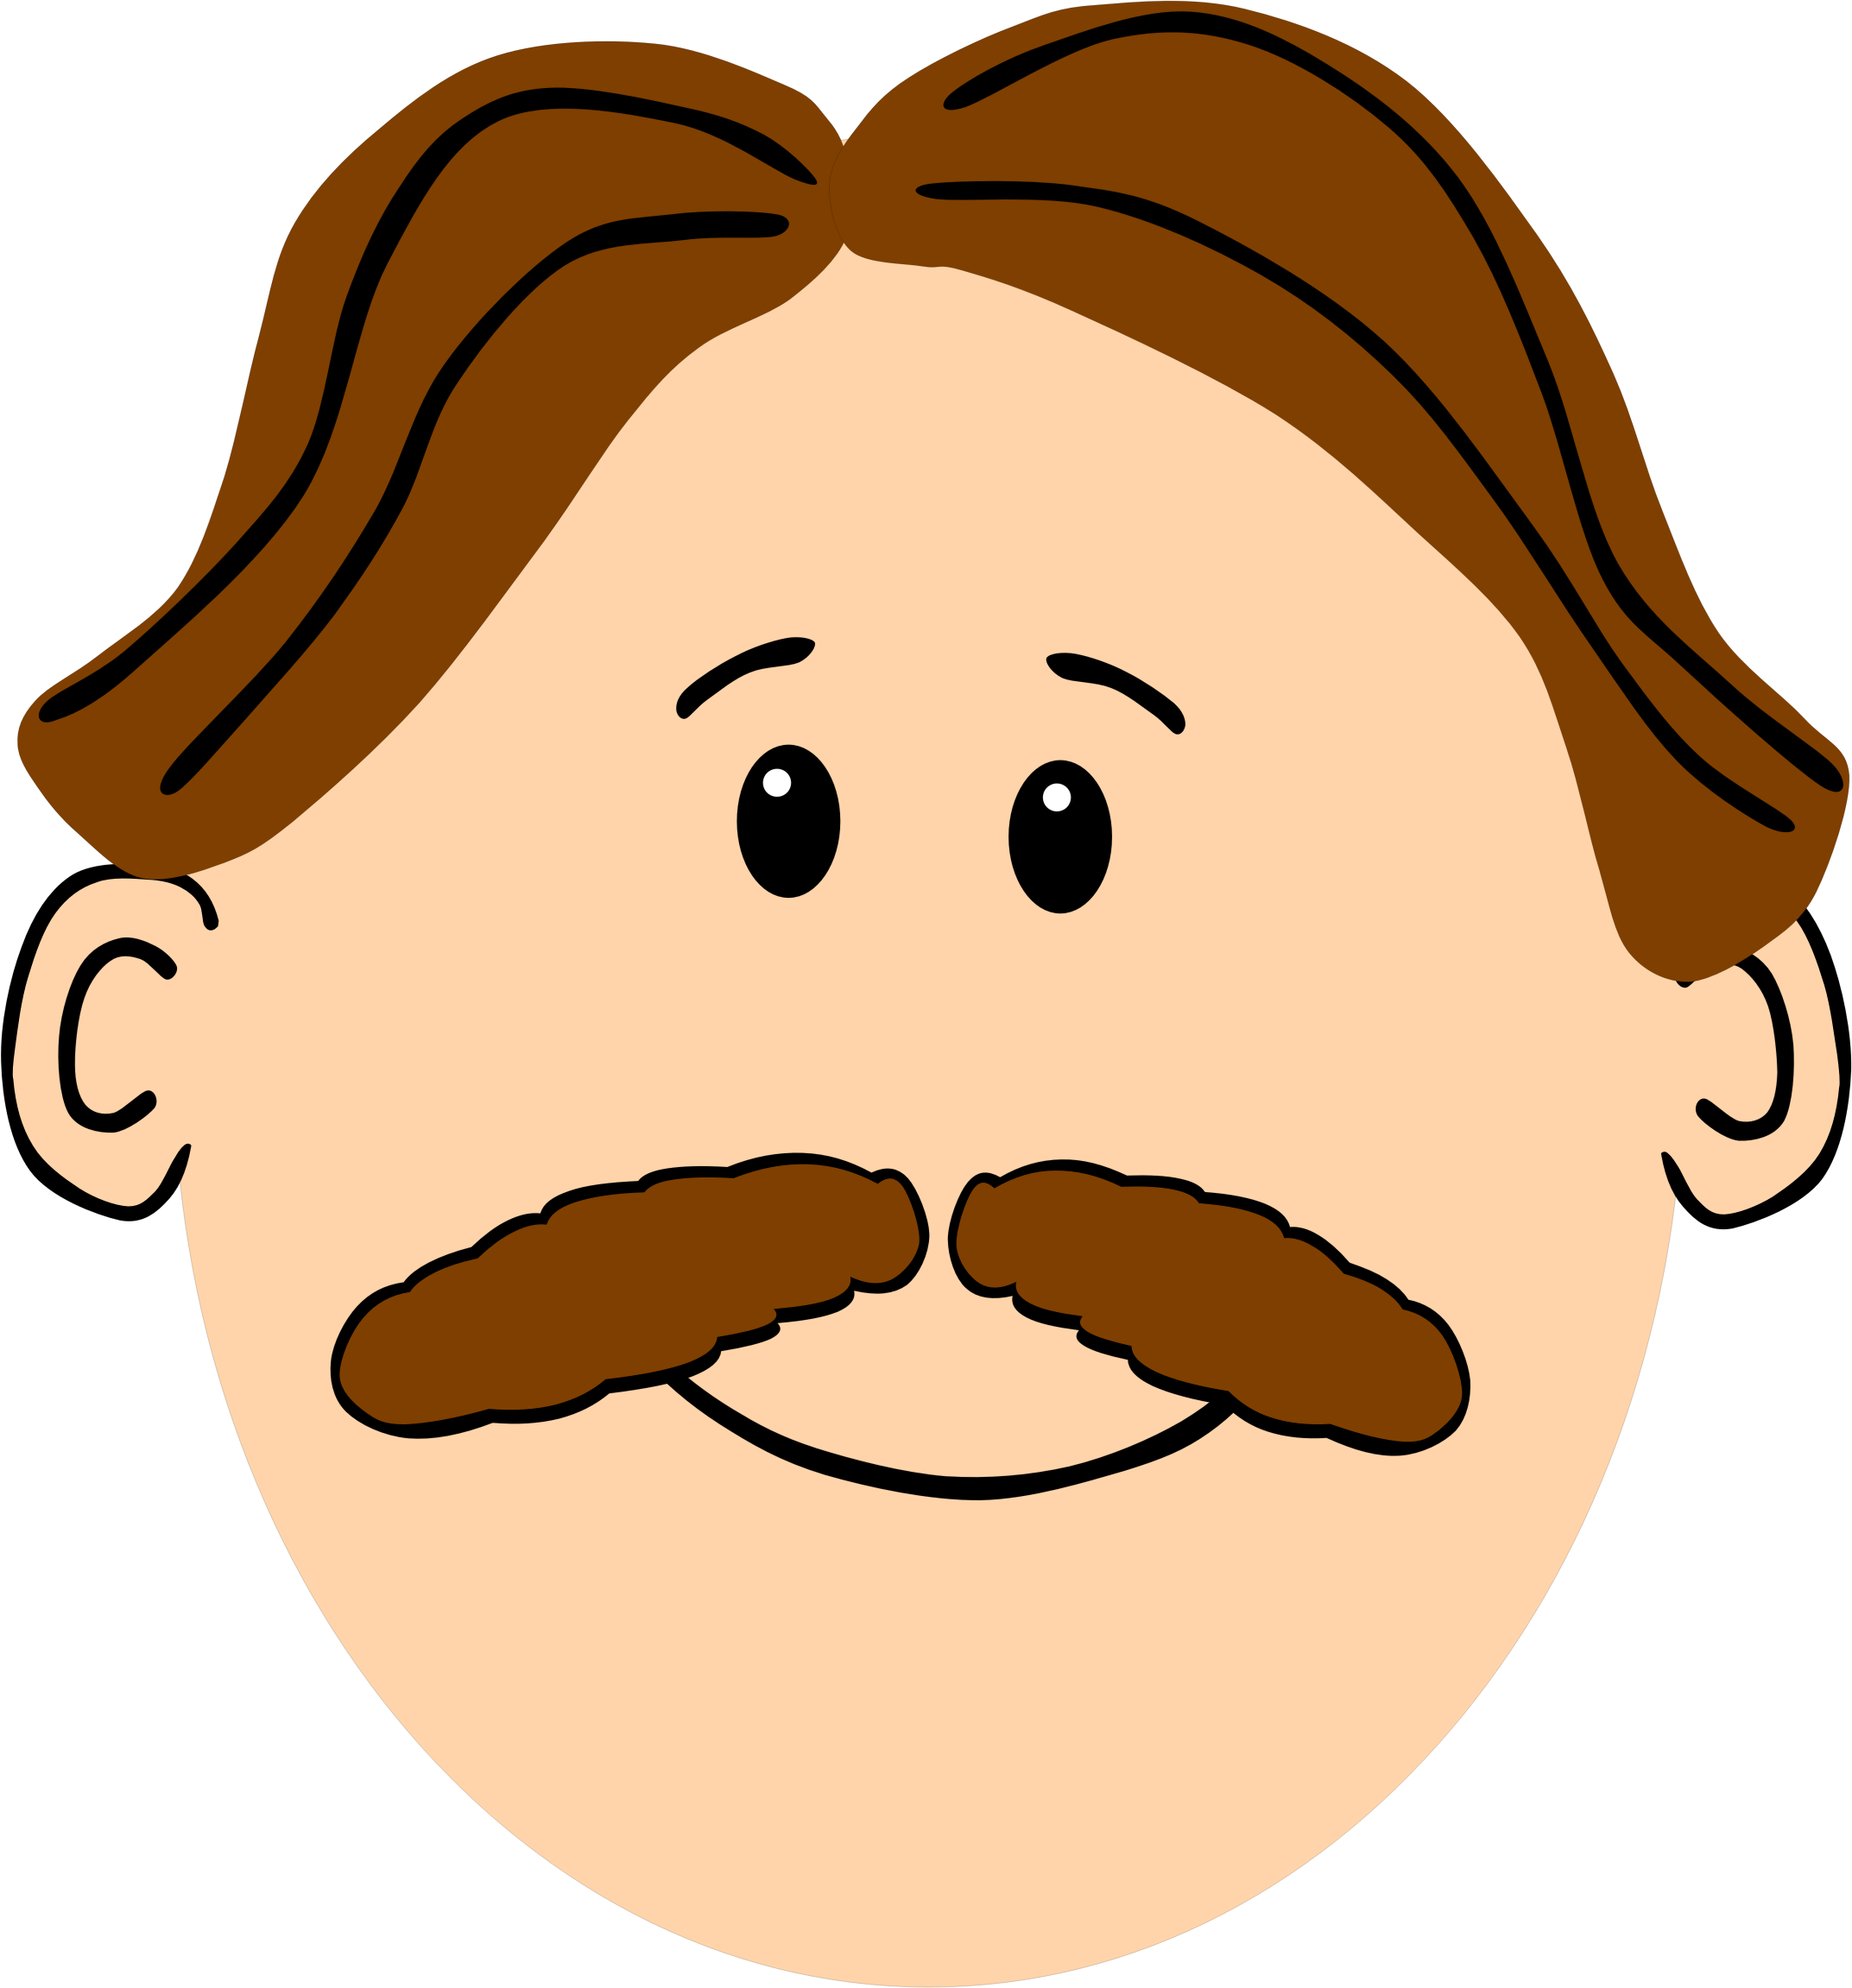 Moustache clipart brown. Man with hair and